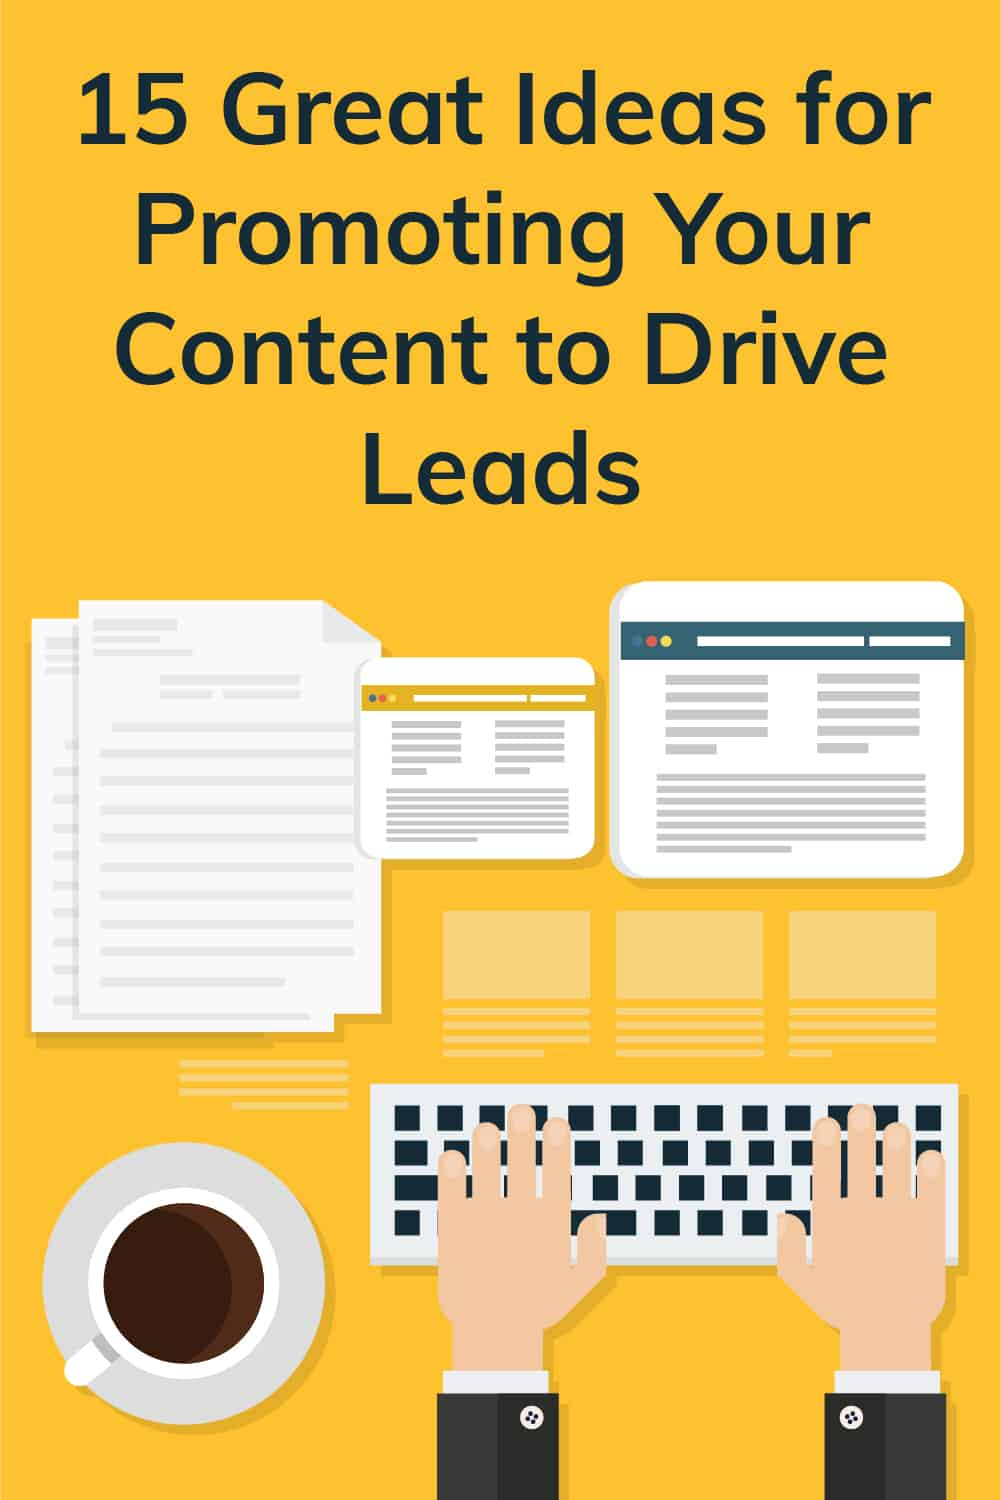 Promoting your content and generating leads doesn't need to be difficult. The ideas here will help you jump-start your content game! via @scopedesign